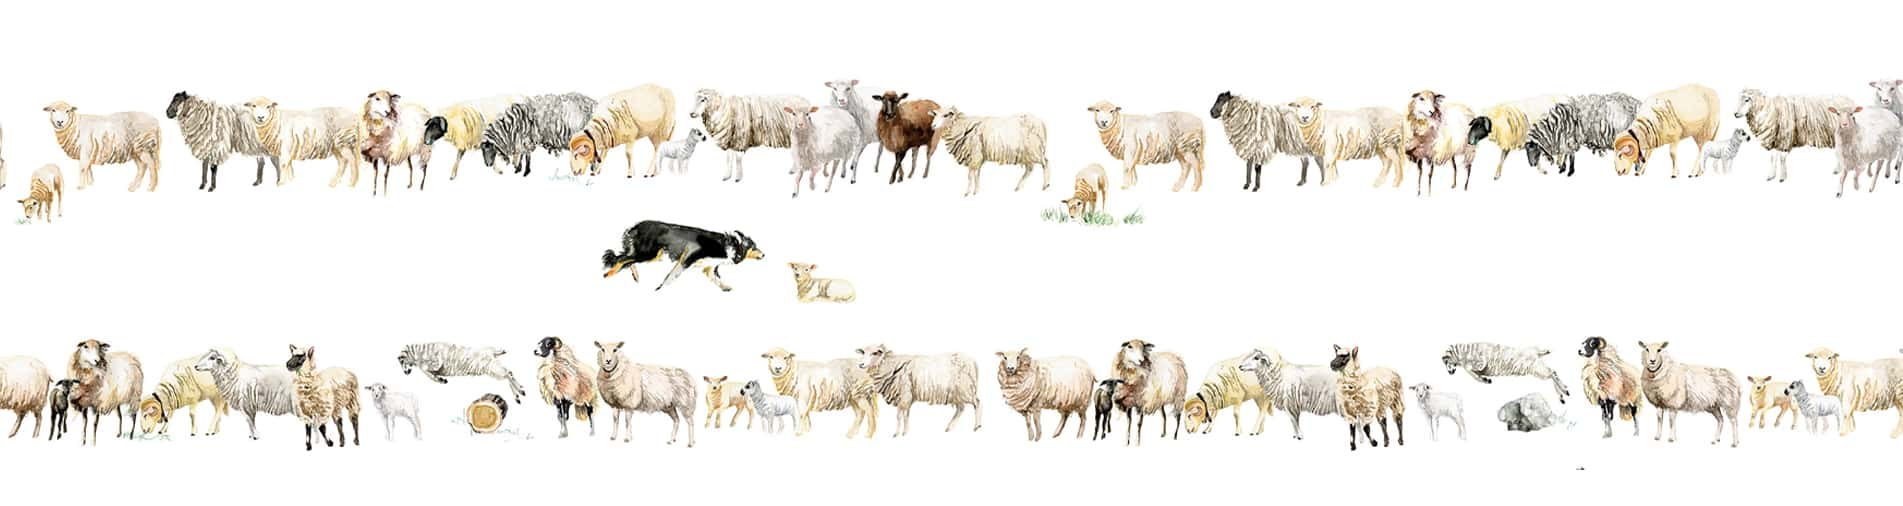 Christian Fischbacher - Counting Sheep